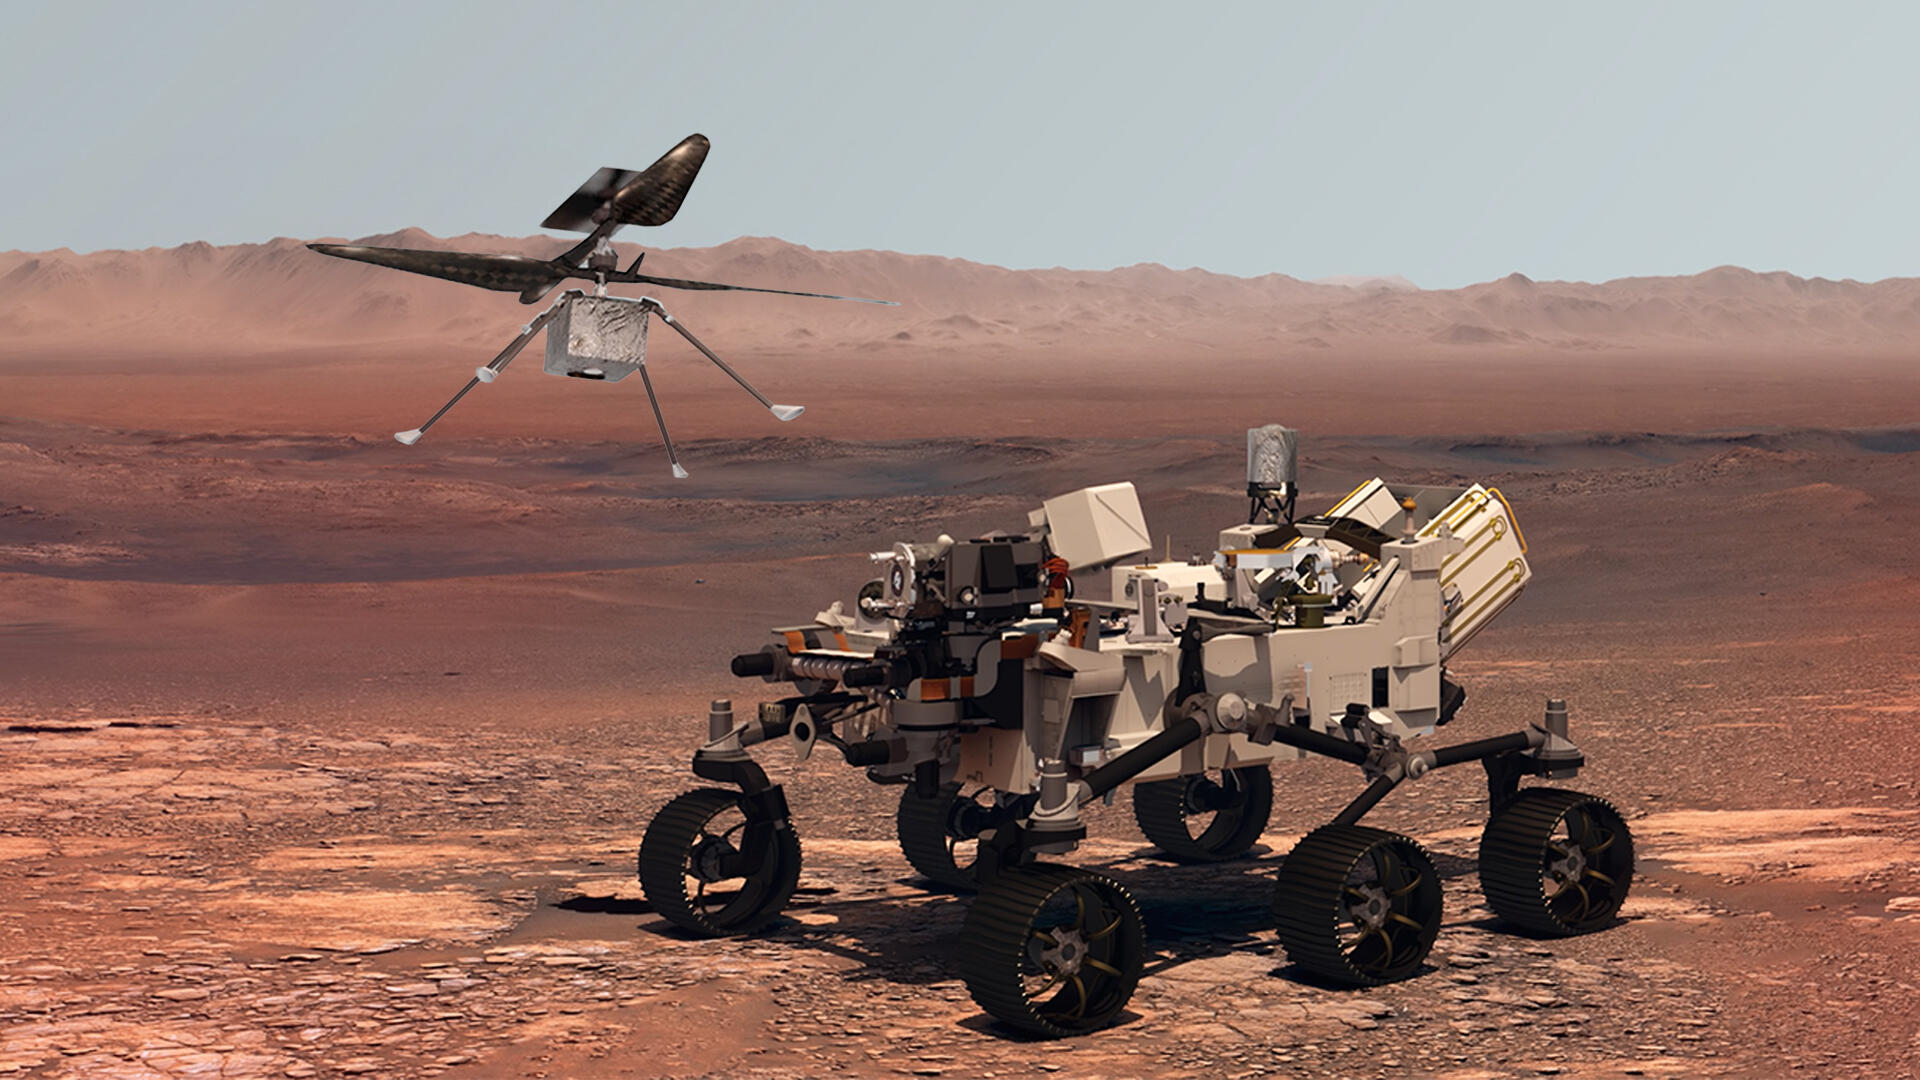 A year in the life of NASA's Mars Perseverance rover